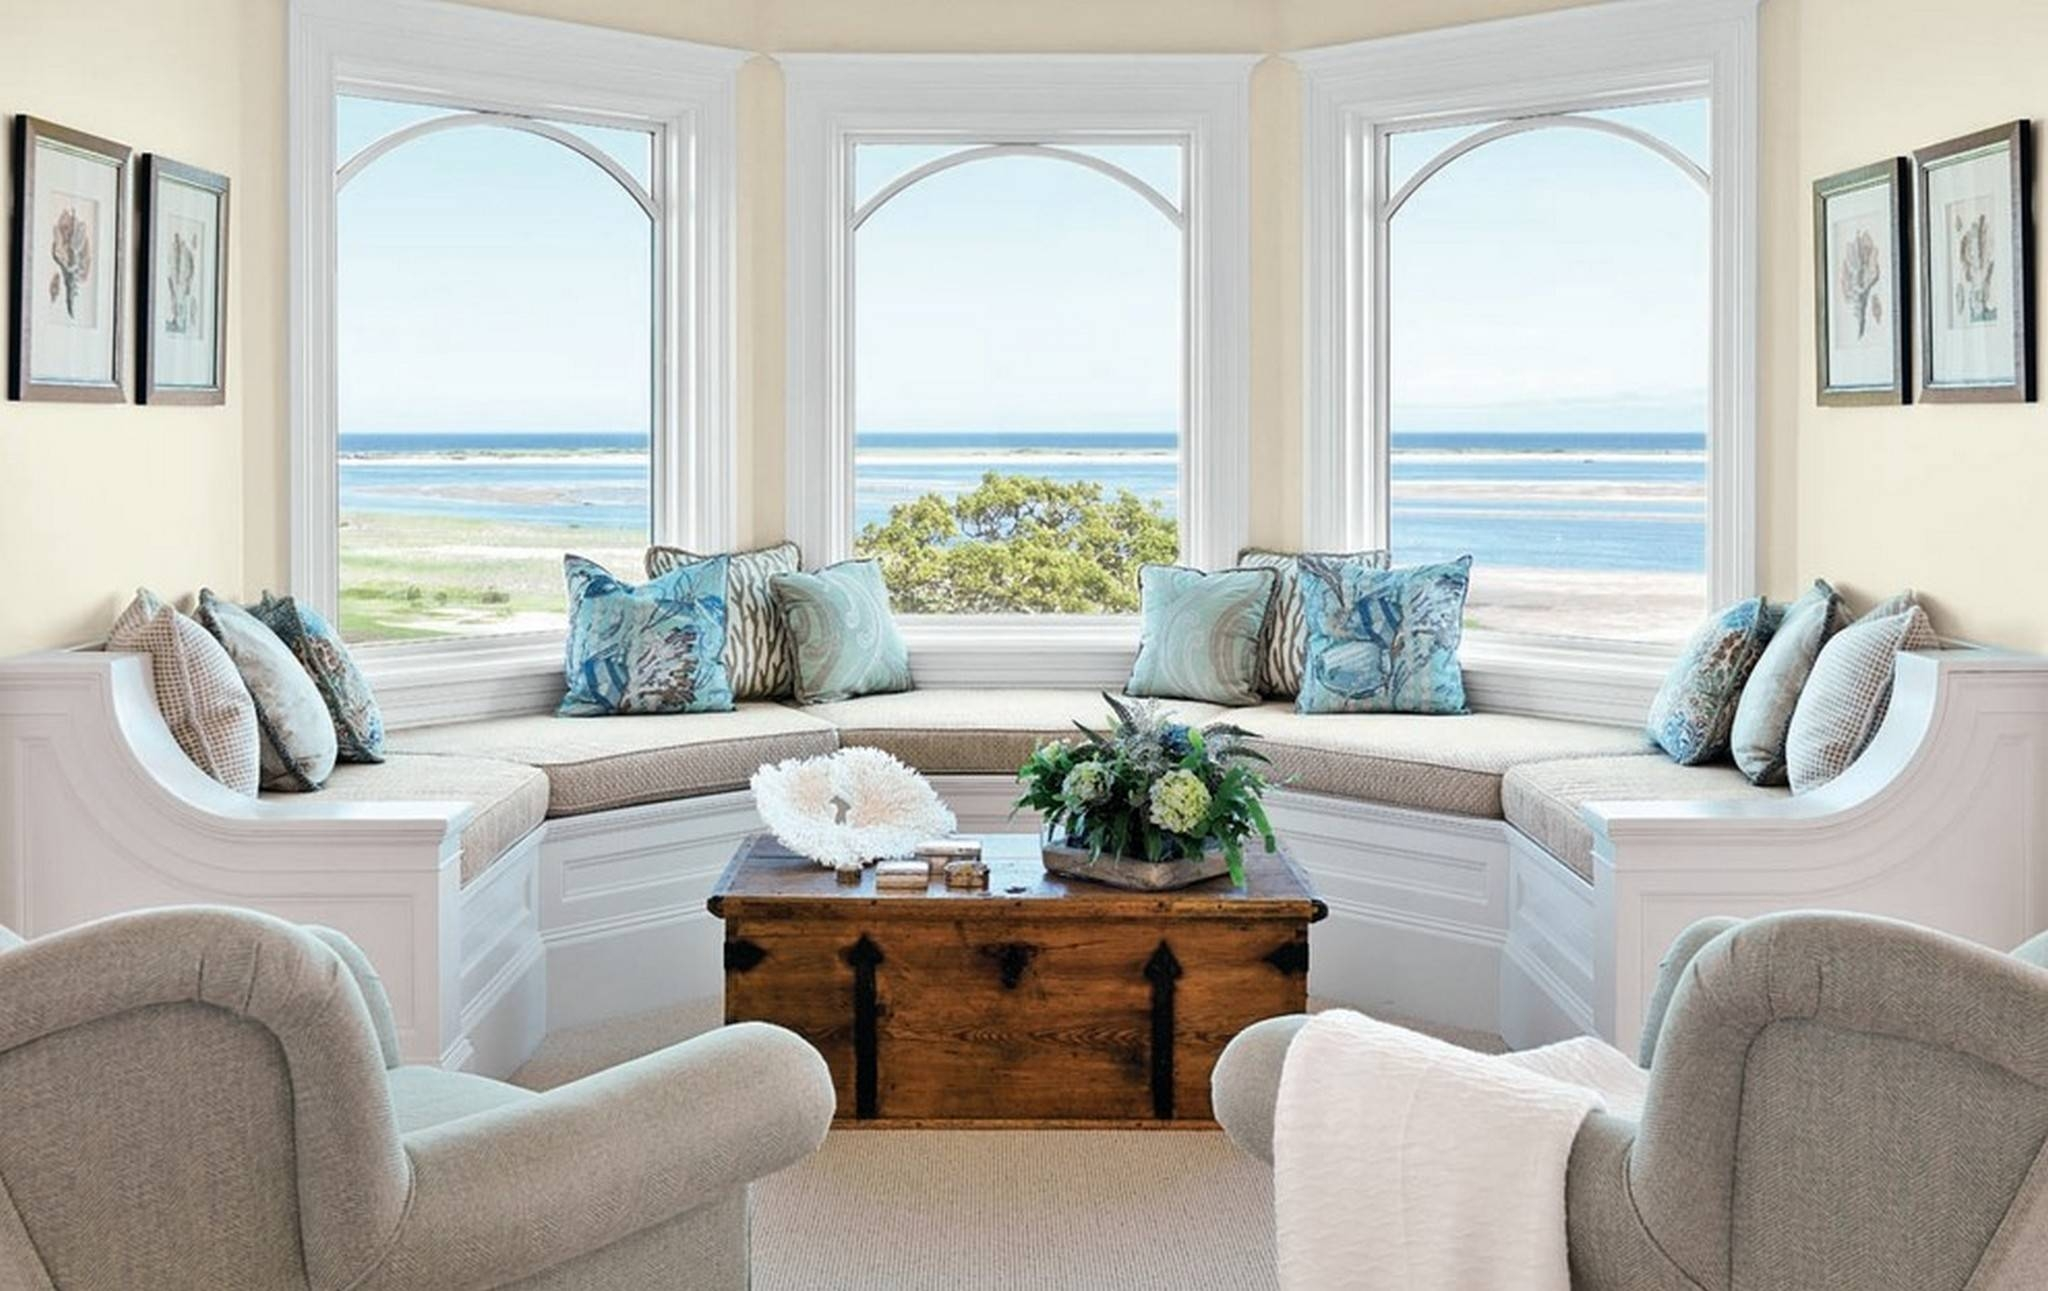 Lovely Bay Window Sofa 73 About Remodel Sofa Room Ideas With Bay within Sofas for Bay Window (Image 12 of 15)